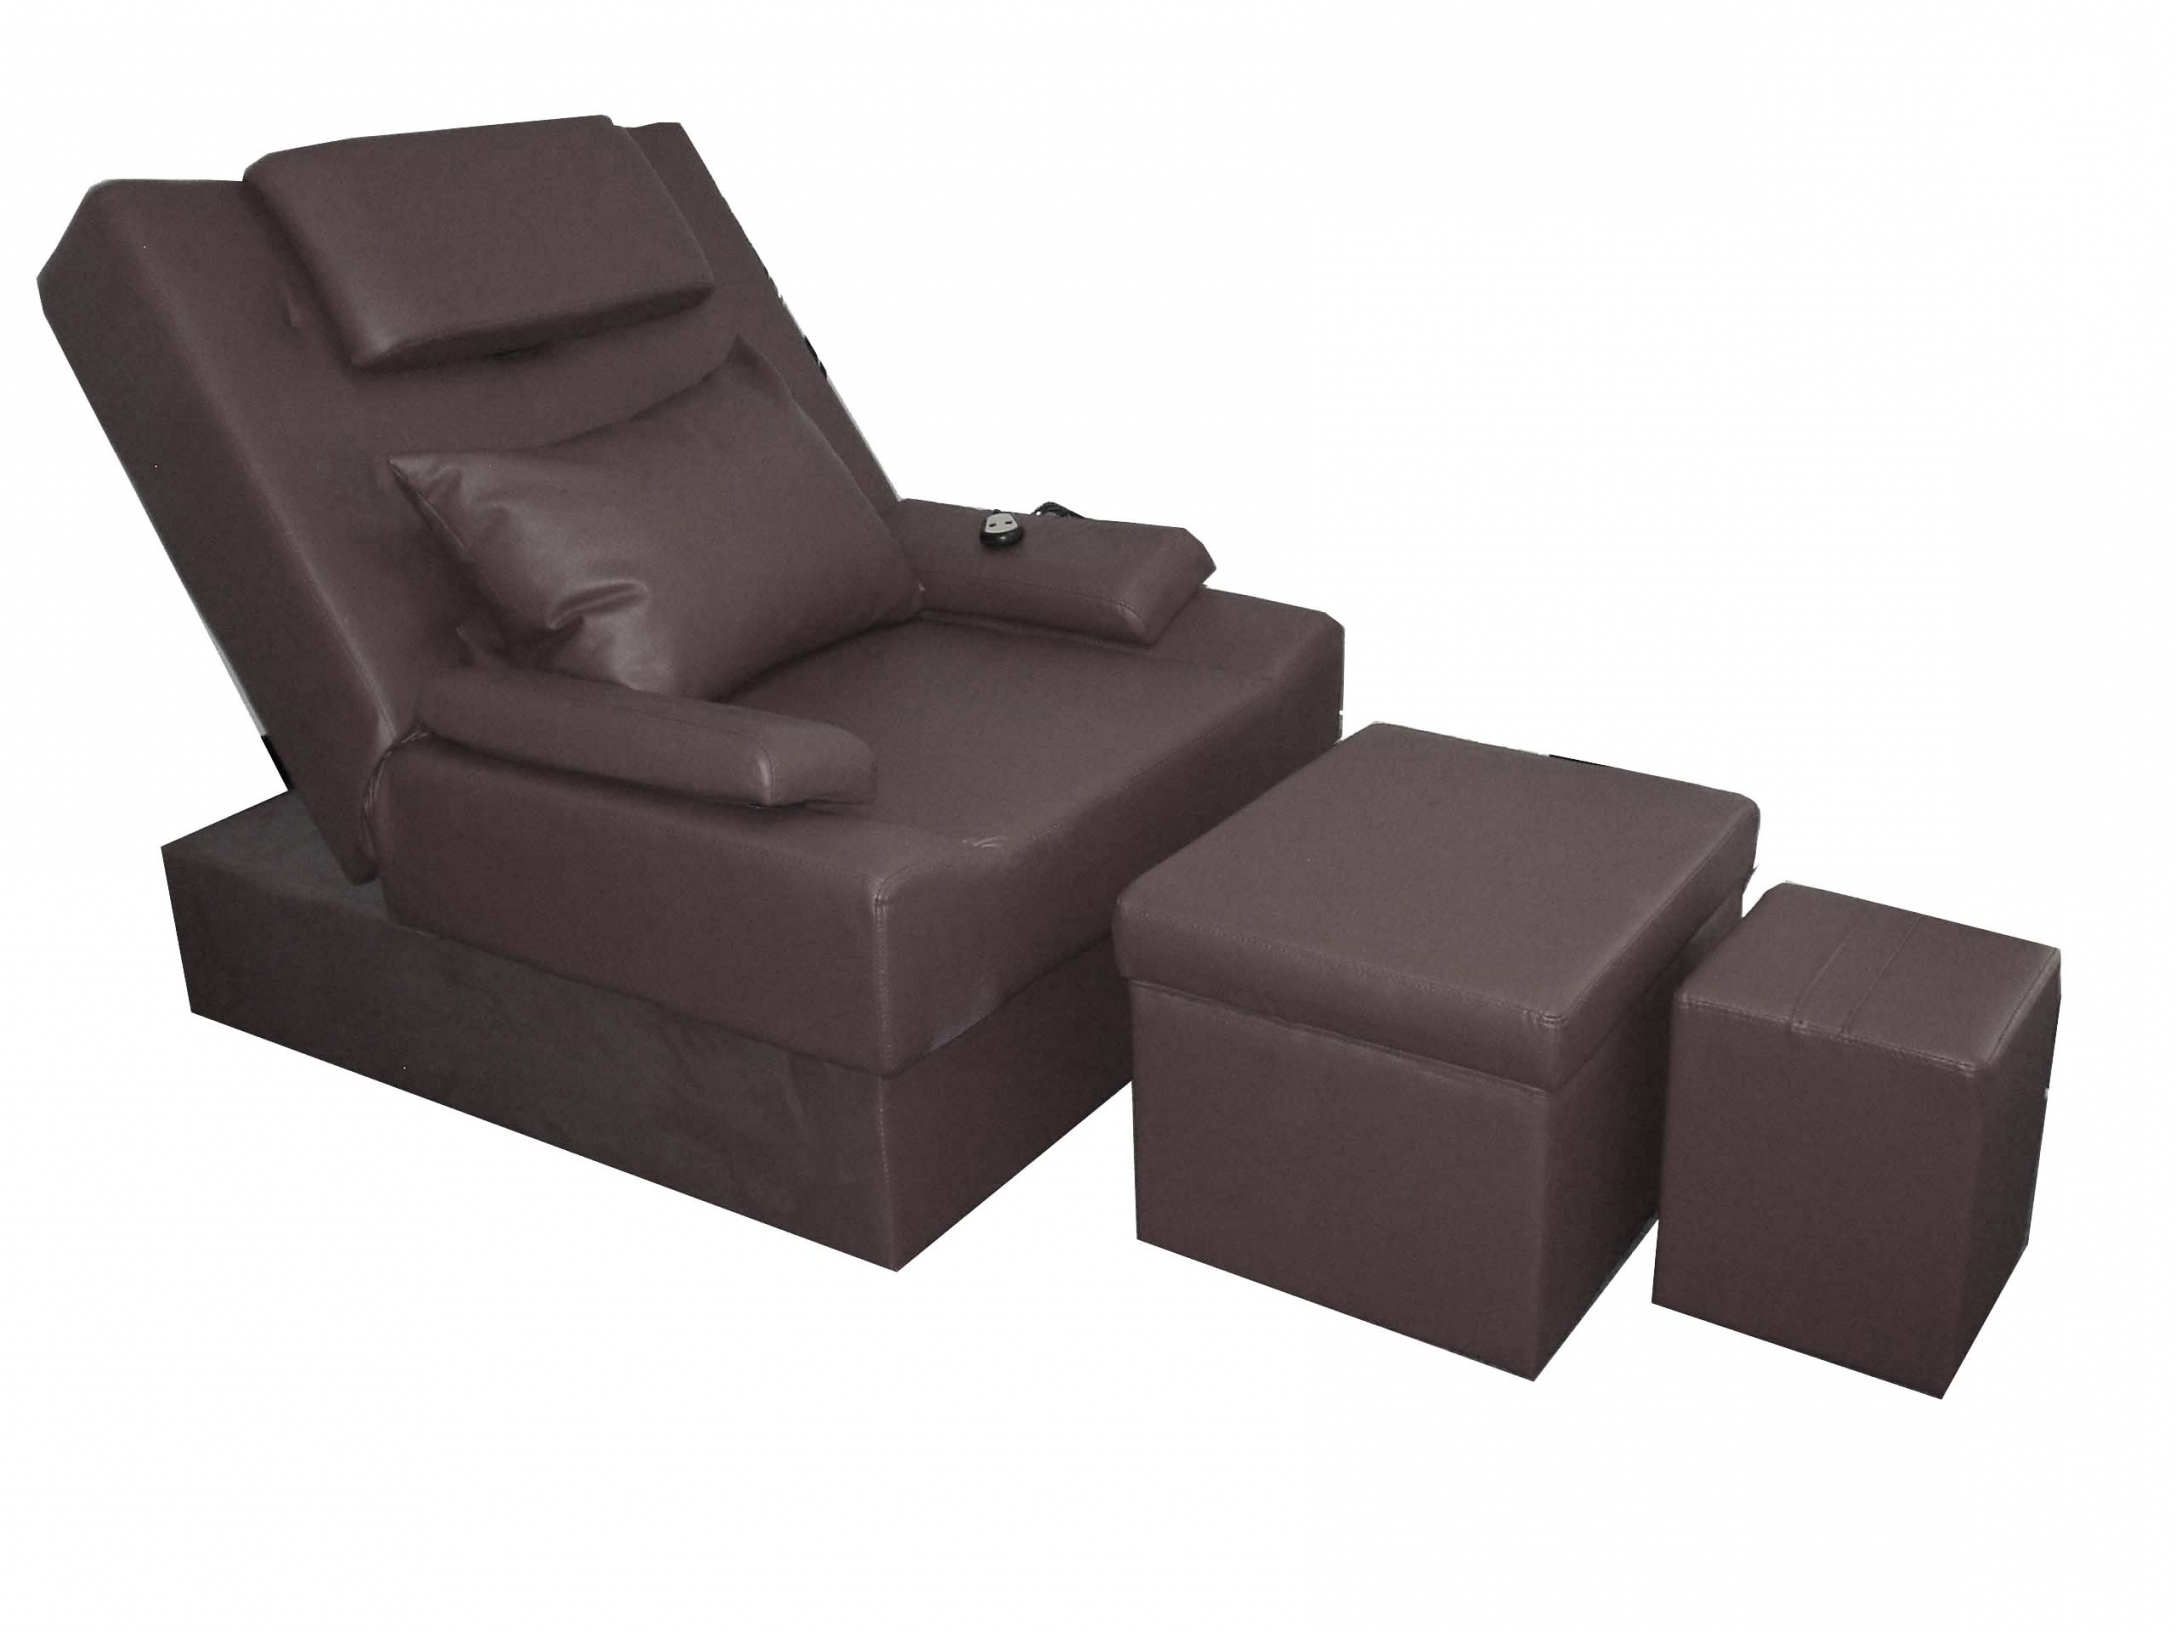 Most Current Foot Massage Chairs Inside Foot Massage Sofas (View 4 of 15)